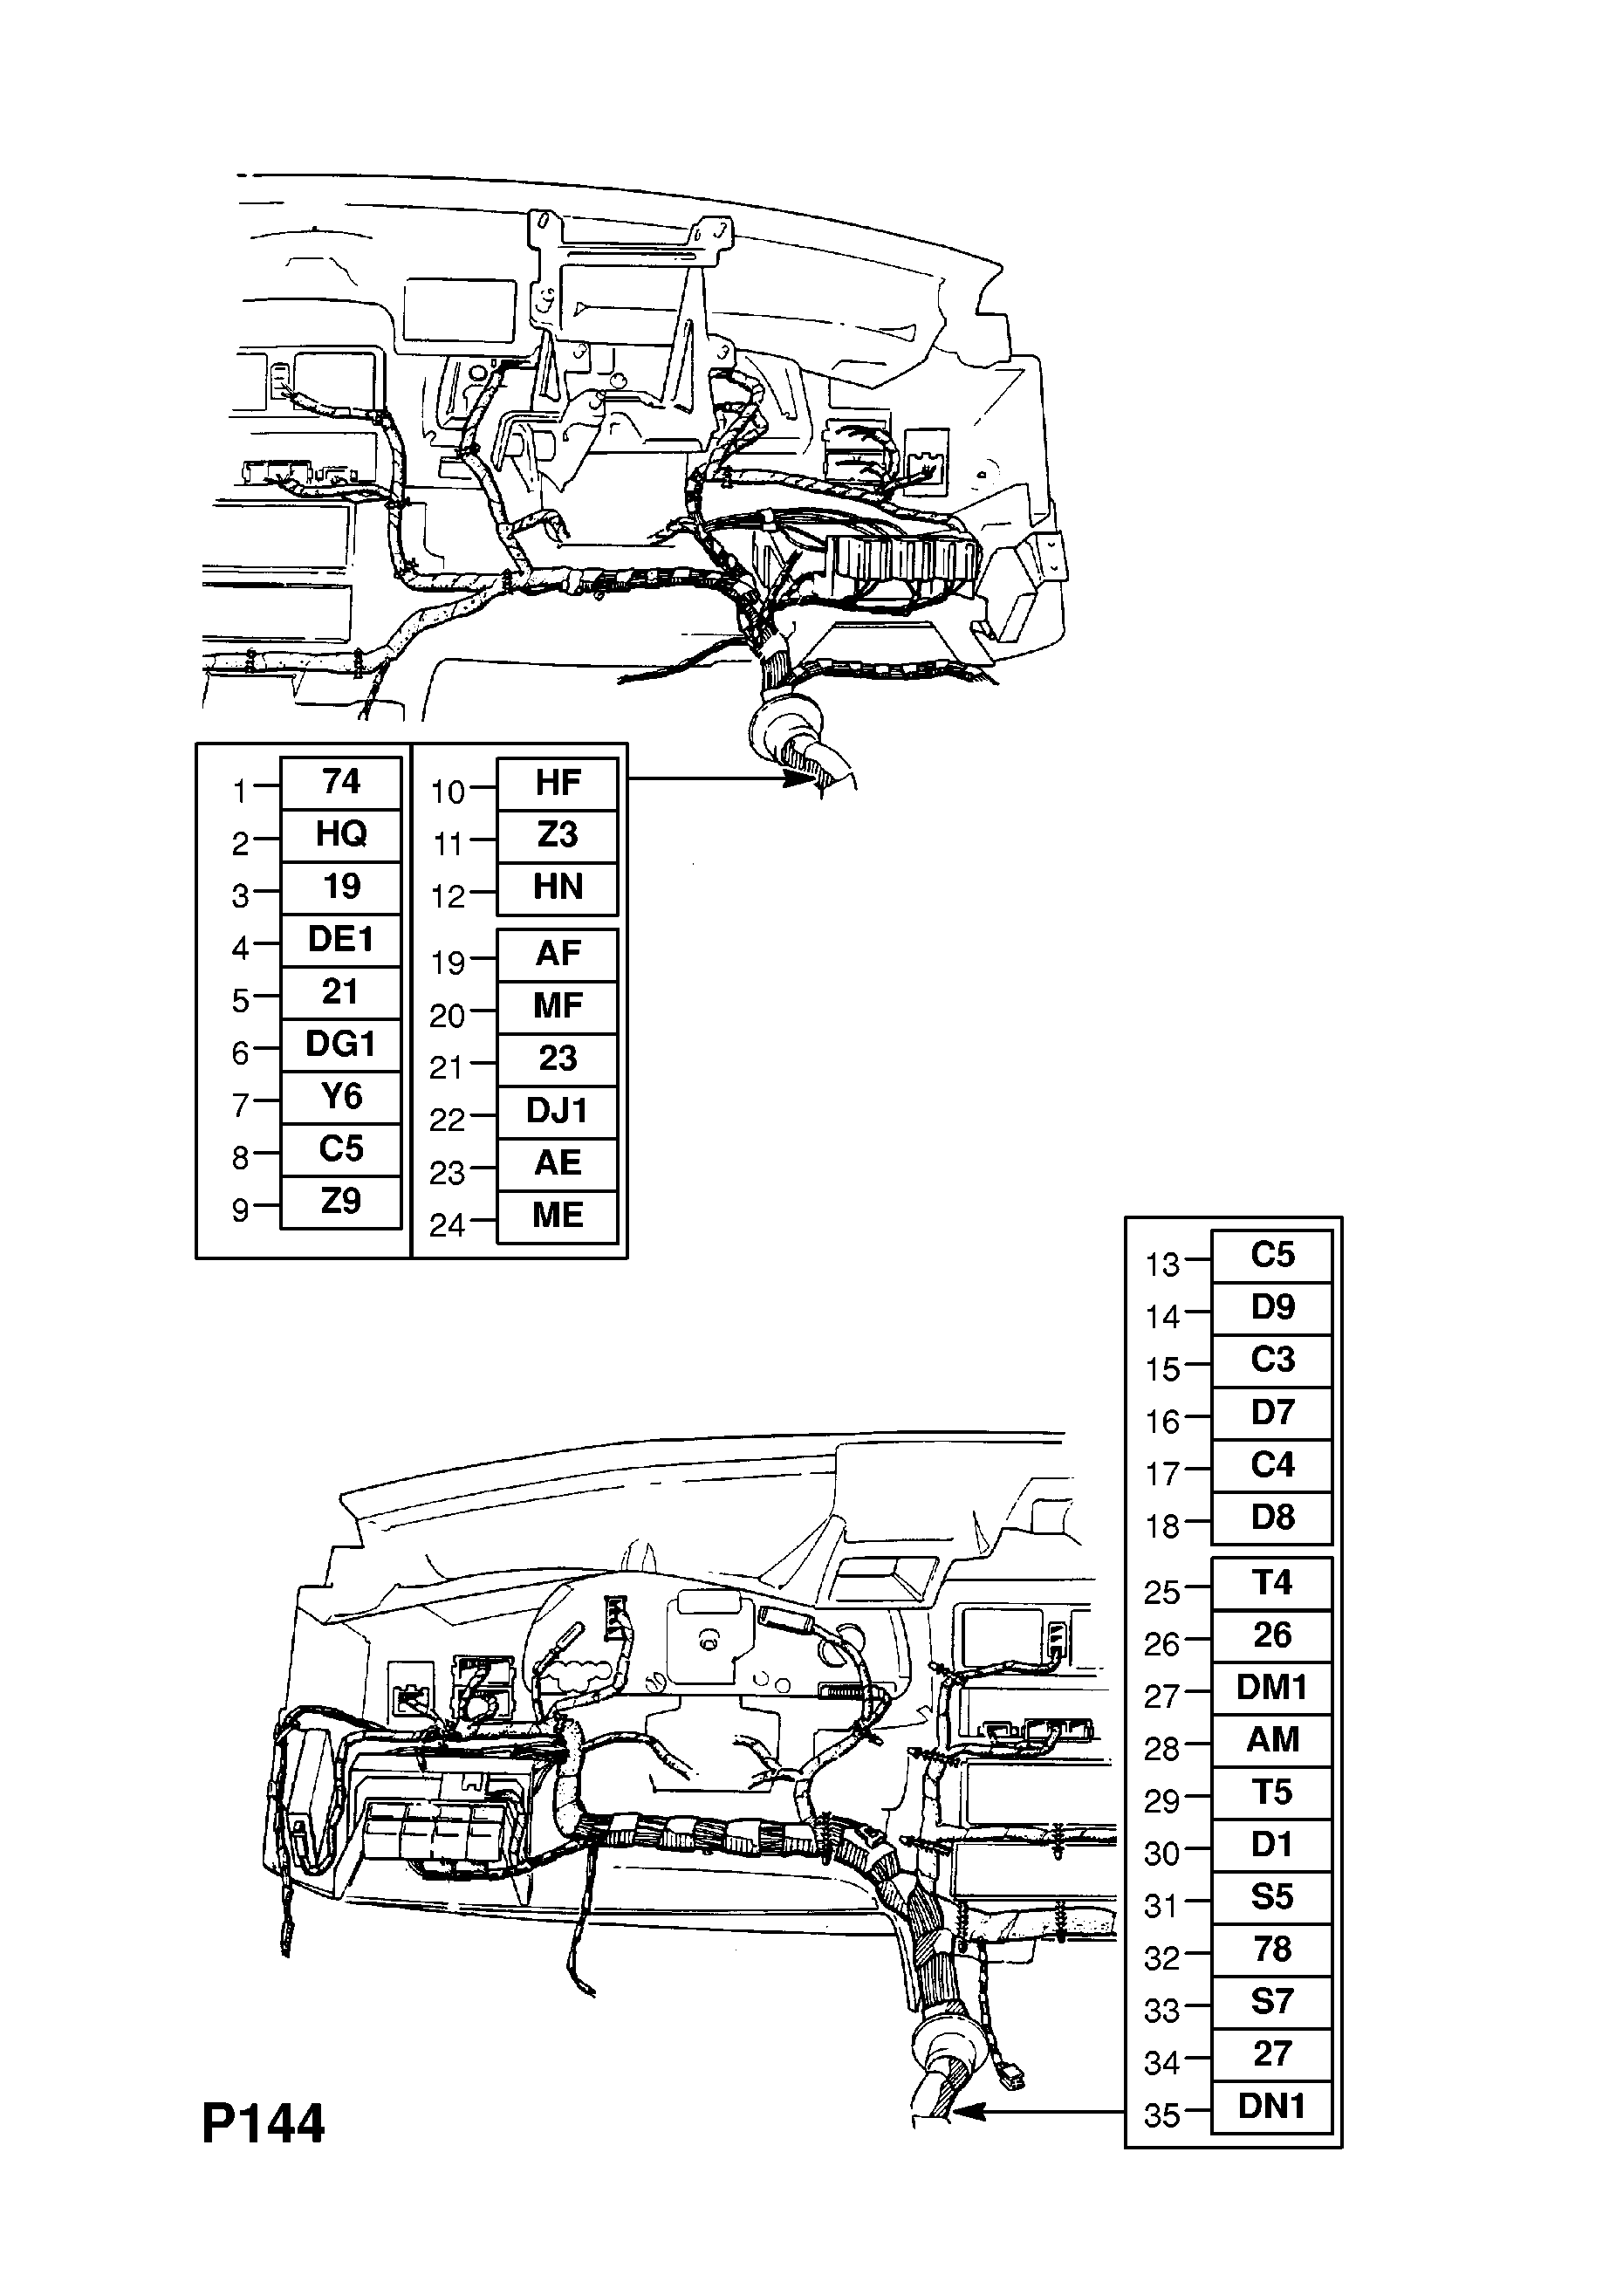 Opel Immobilizer Wiring Diagram Diagrams Daihatsu Vectra A 1989 1995 P Electrical 8 Harness 75 Bluetooth